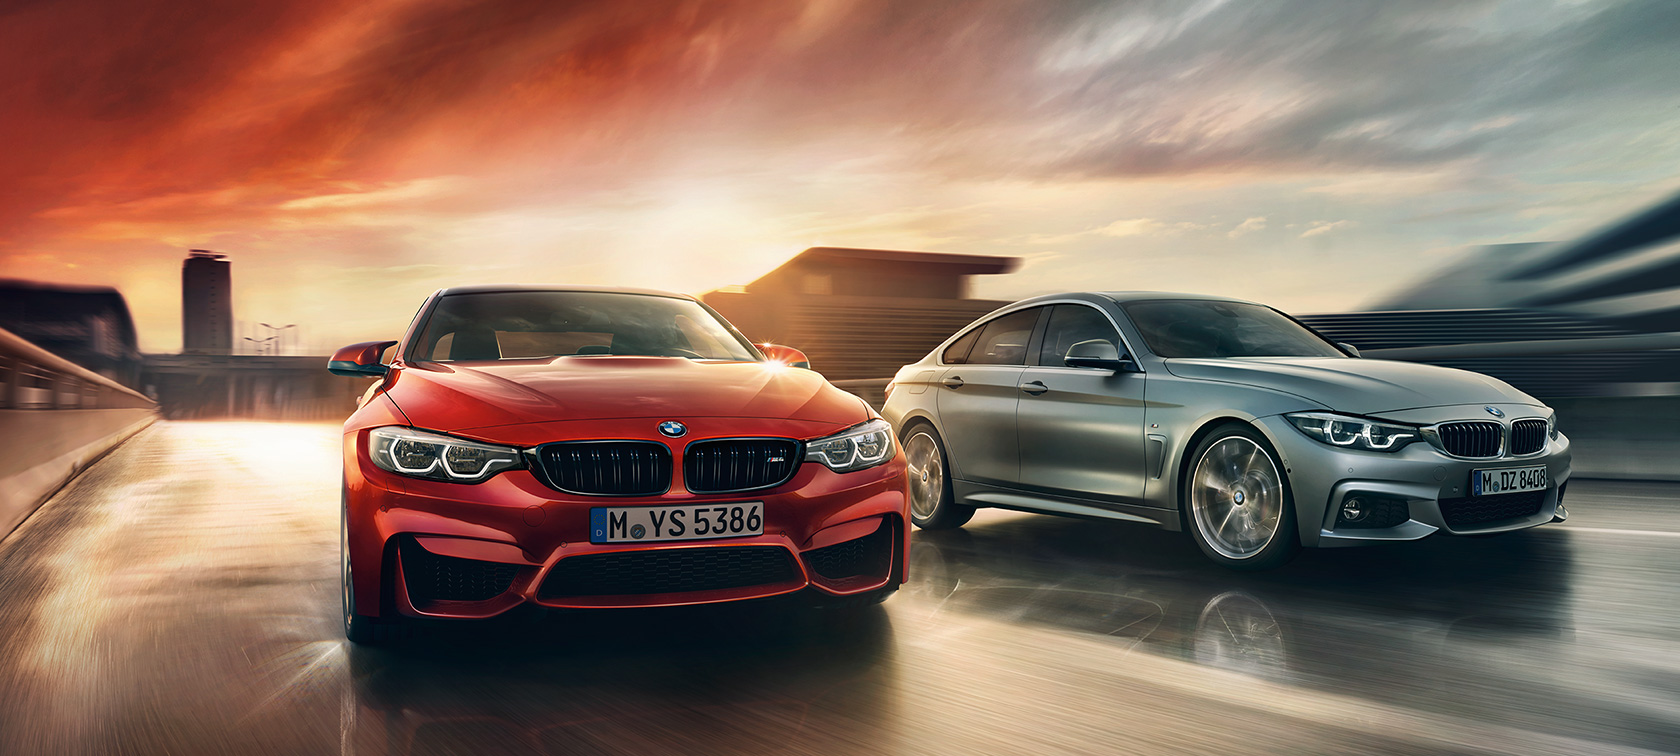 BMW 4 Series: crimson red and silver metallic grey cars racing during sunset.